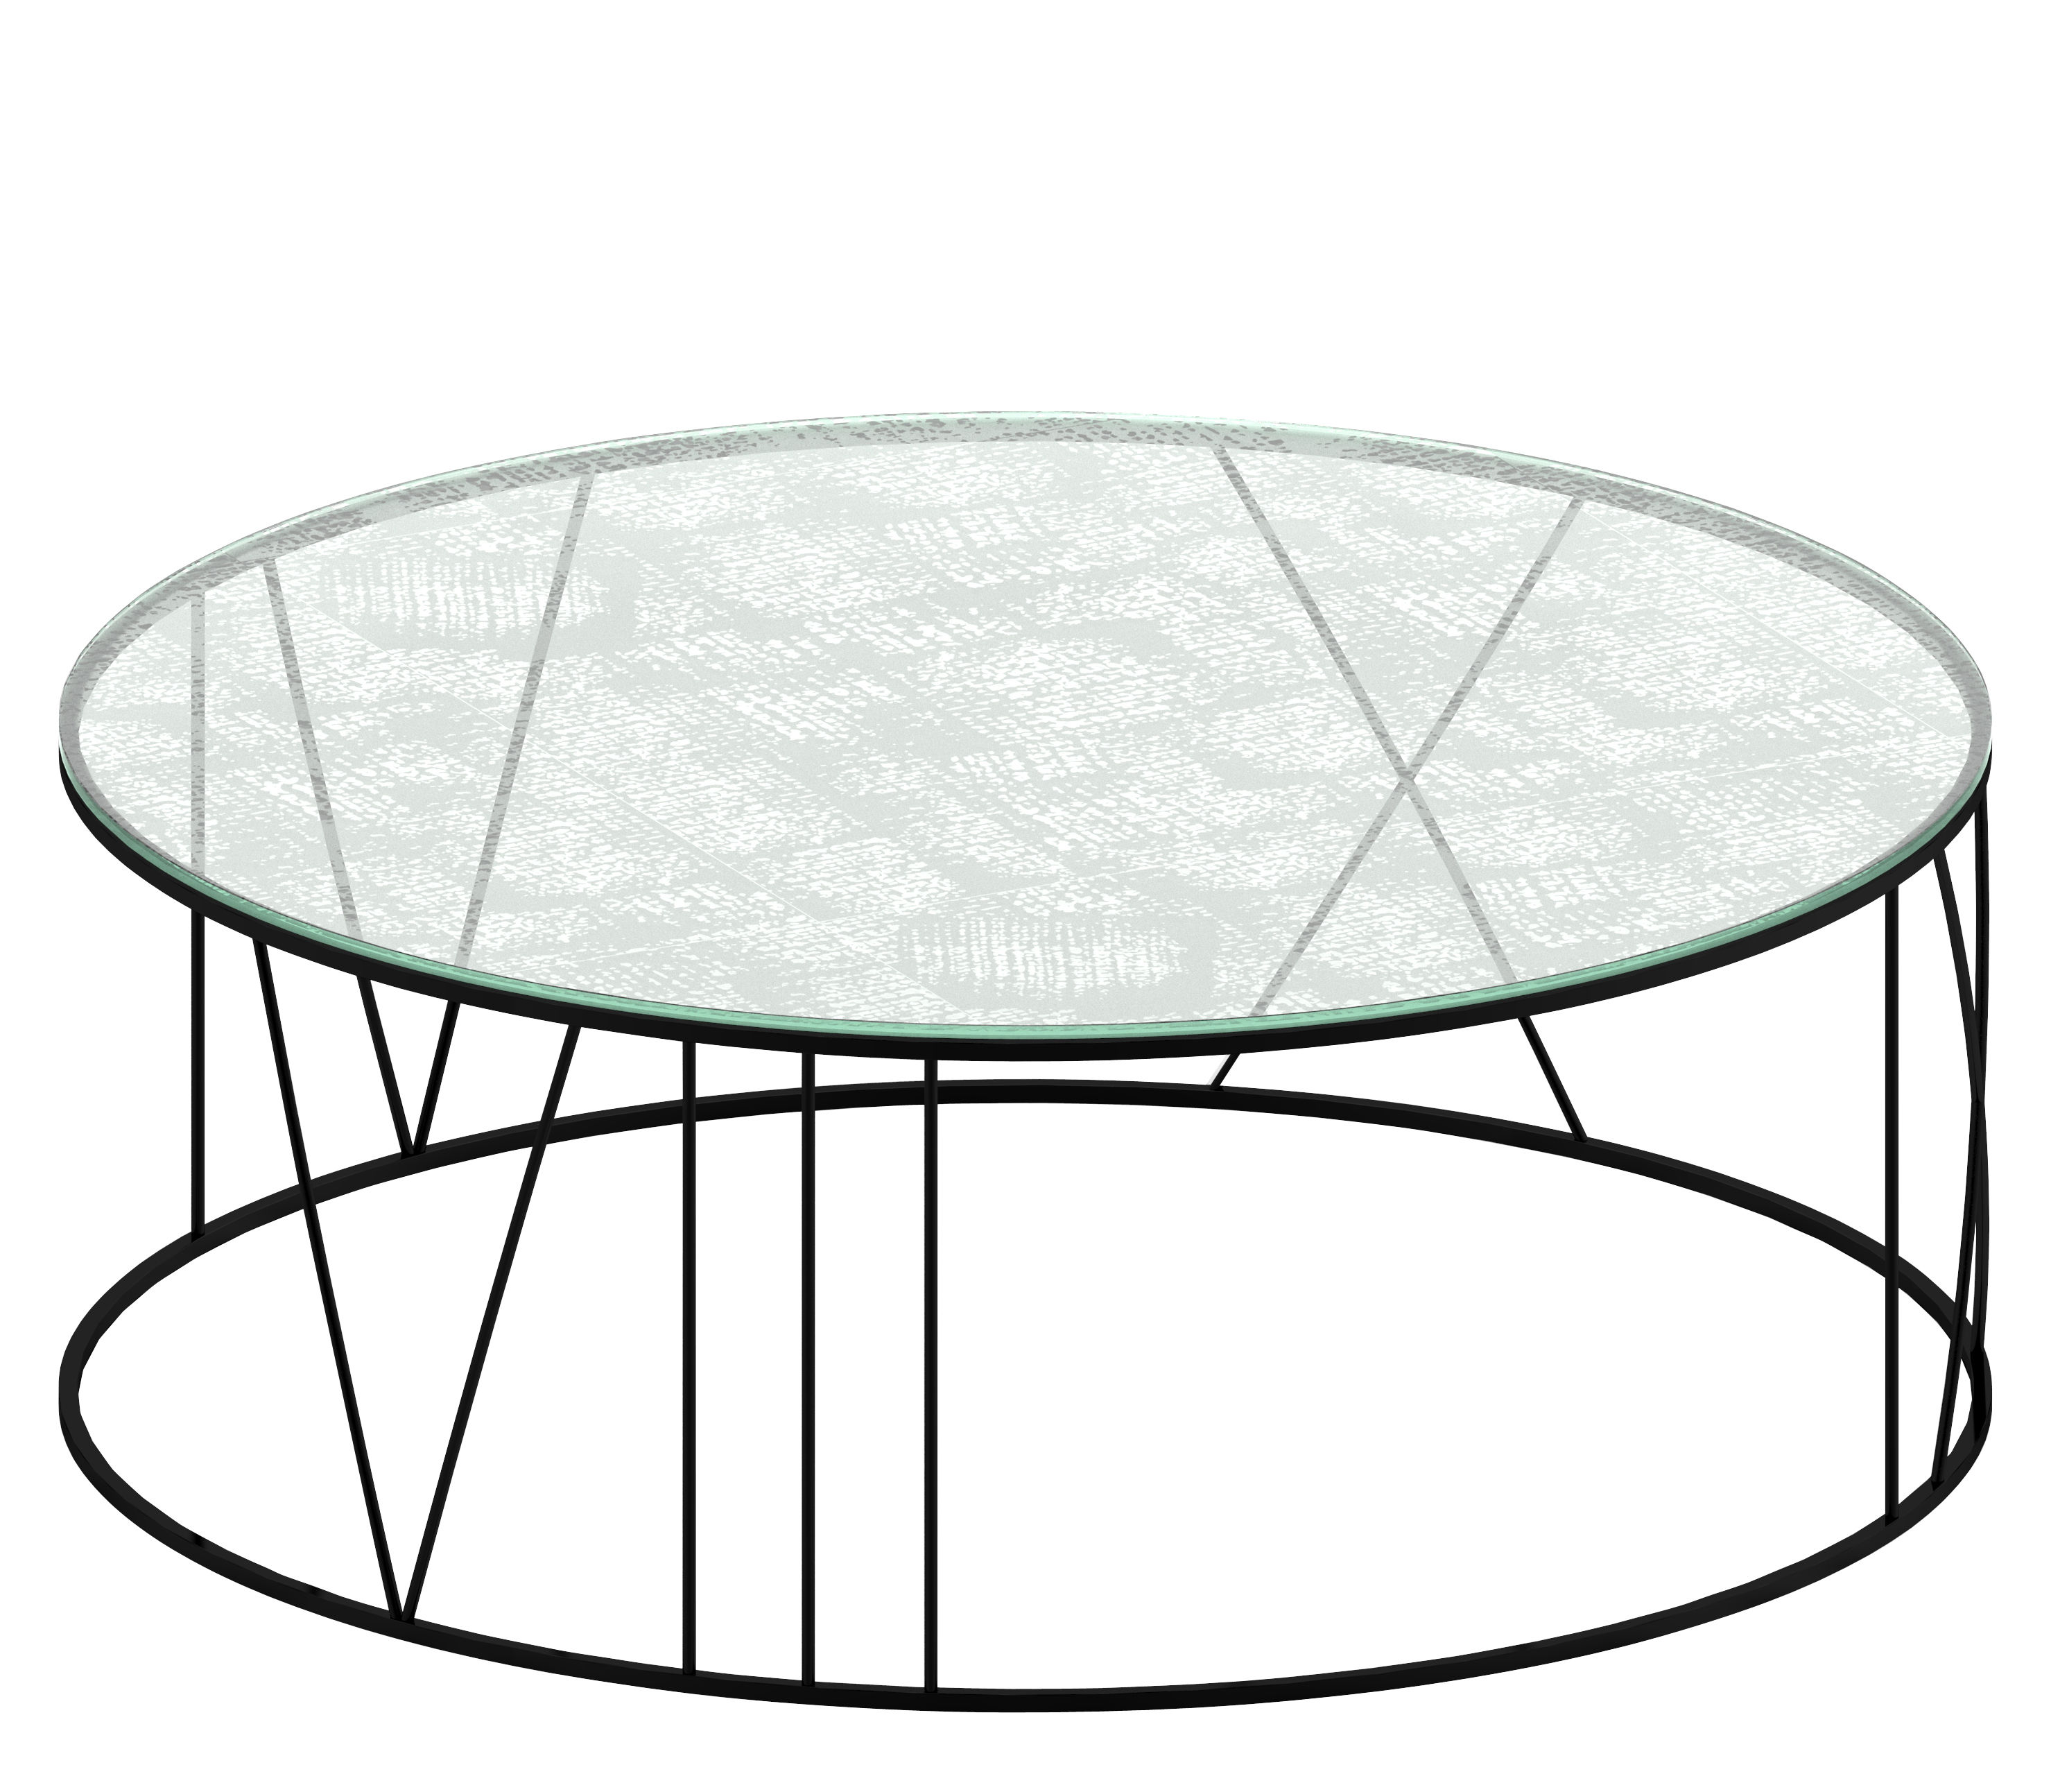 Glass Coffee Tables Under 100: Black Copper / Sandblasted